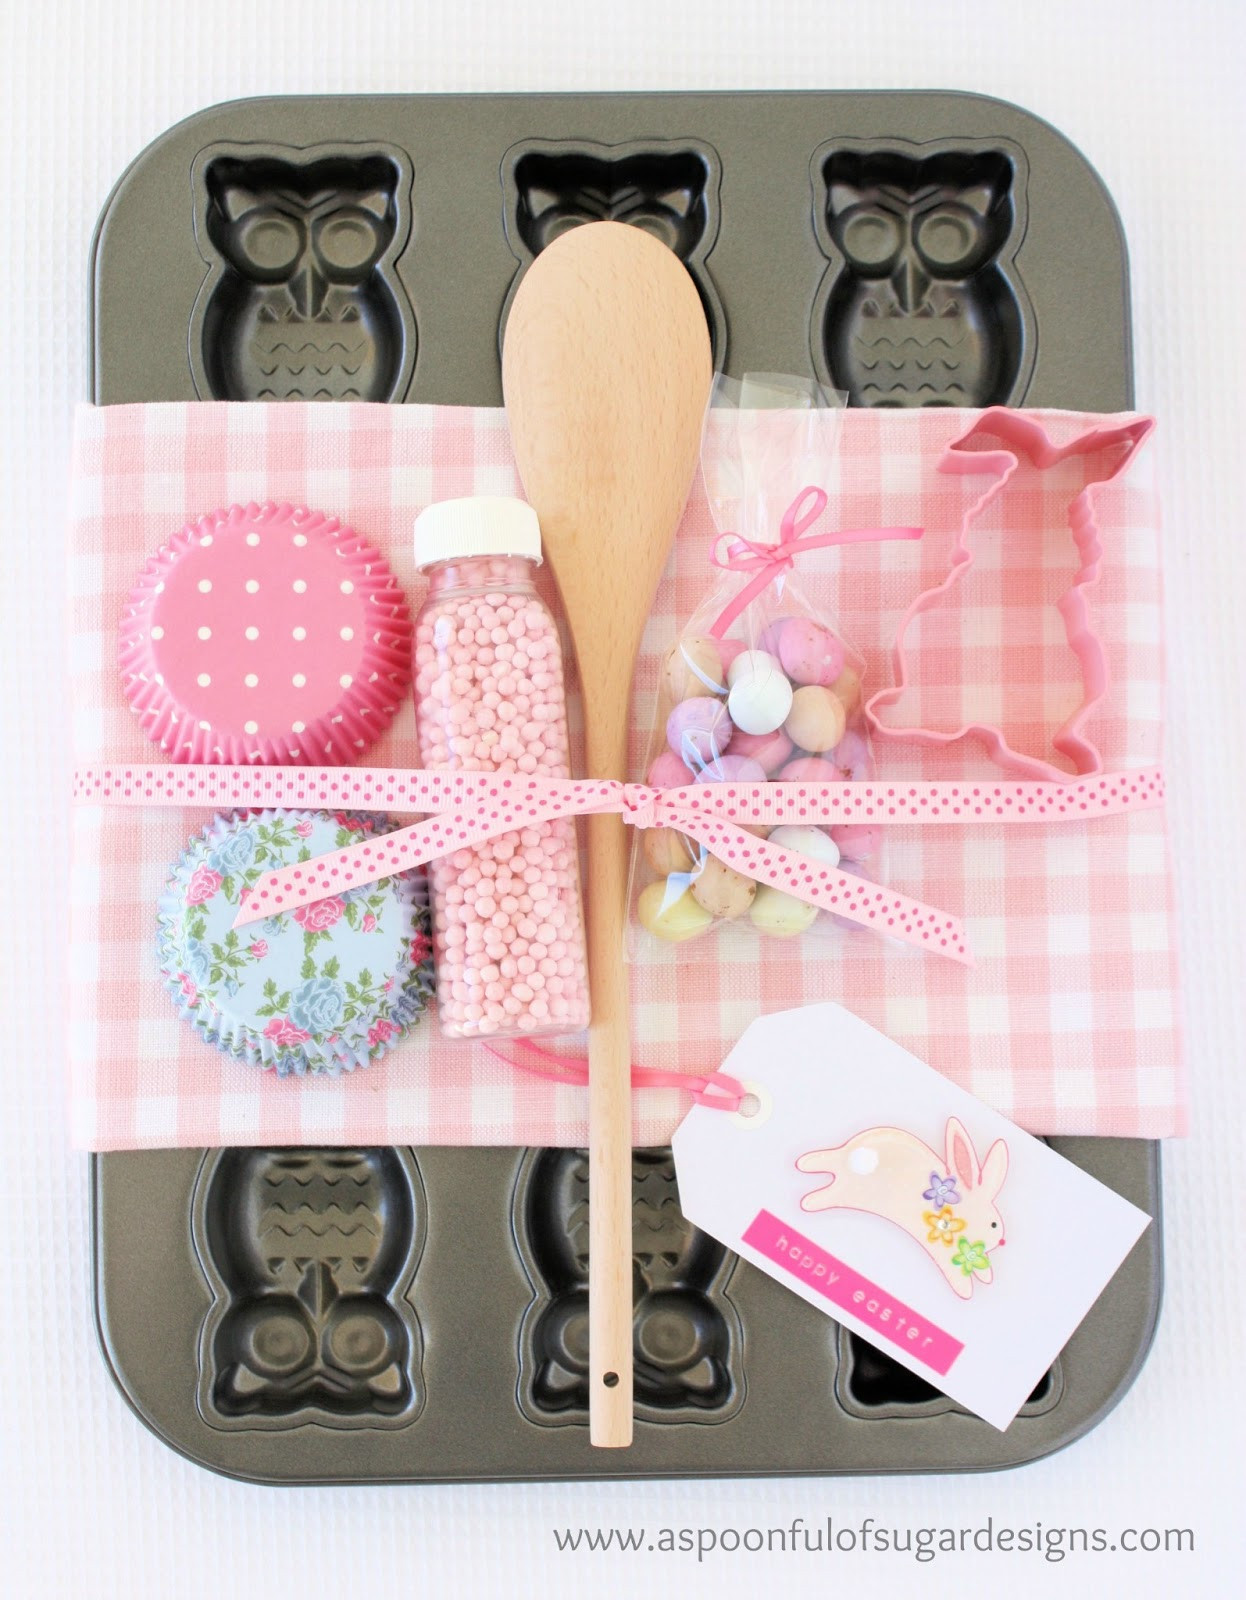 Best ideas about Baking Gift Ideas . Save or Pin Easter Gift Ideas A Spoonful of Sugar Now.